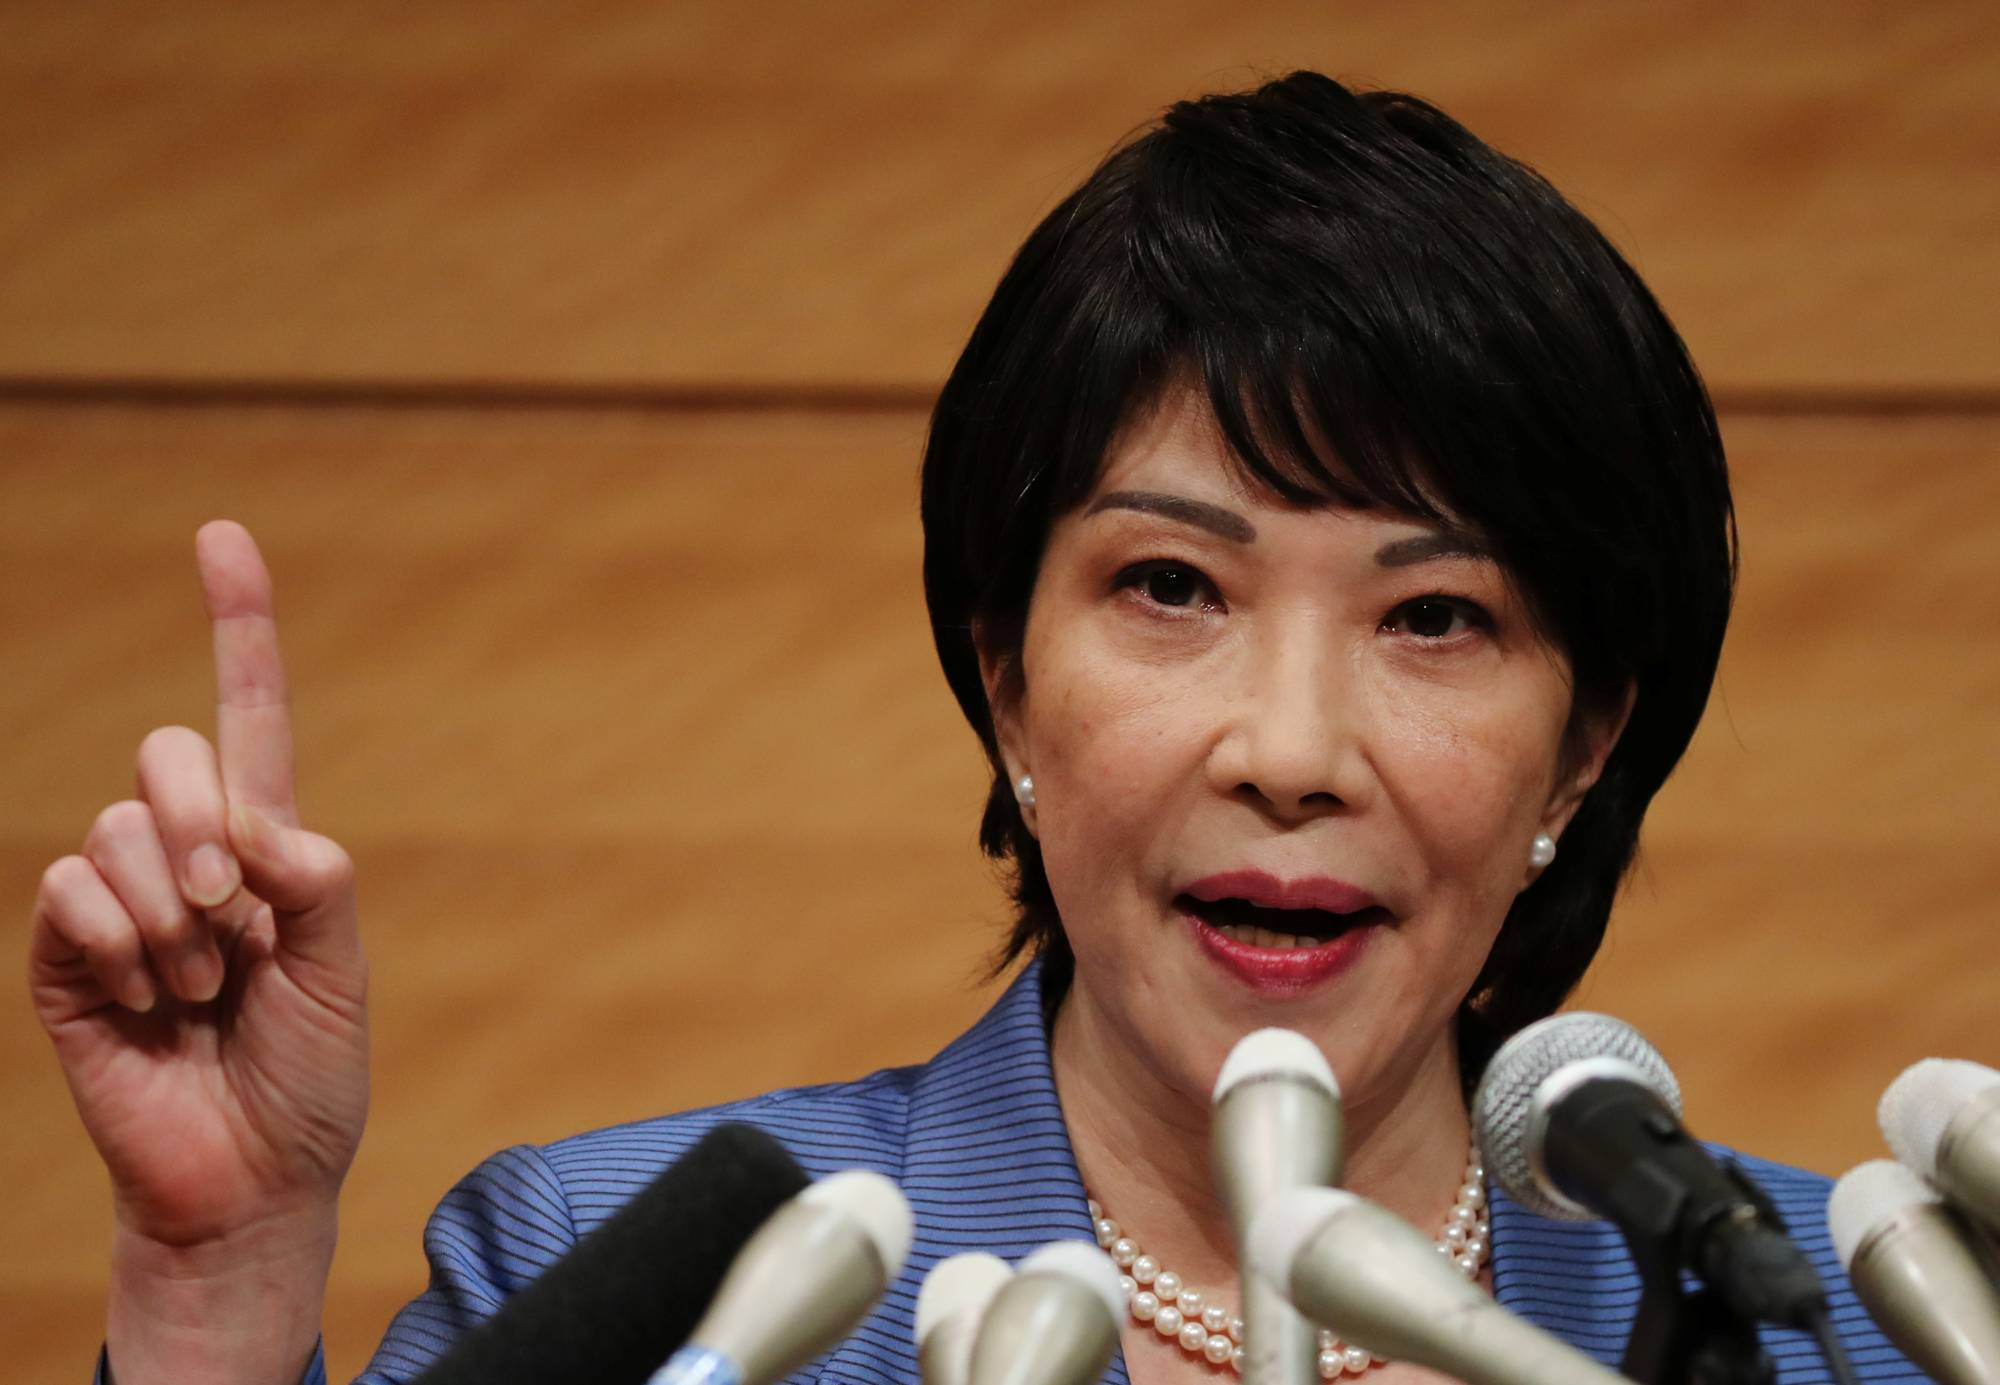 Lawmaker Sanae Takaichi speaks at a news conference to announce her running in the Liberal Democratic Party leadership race to succeed Prime Minister Yoshihide Suga. | REUTERS